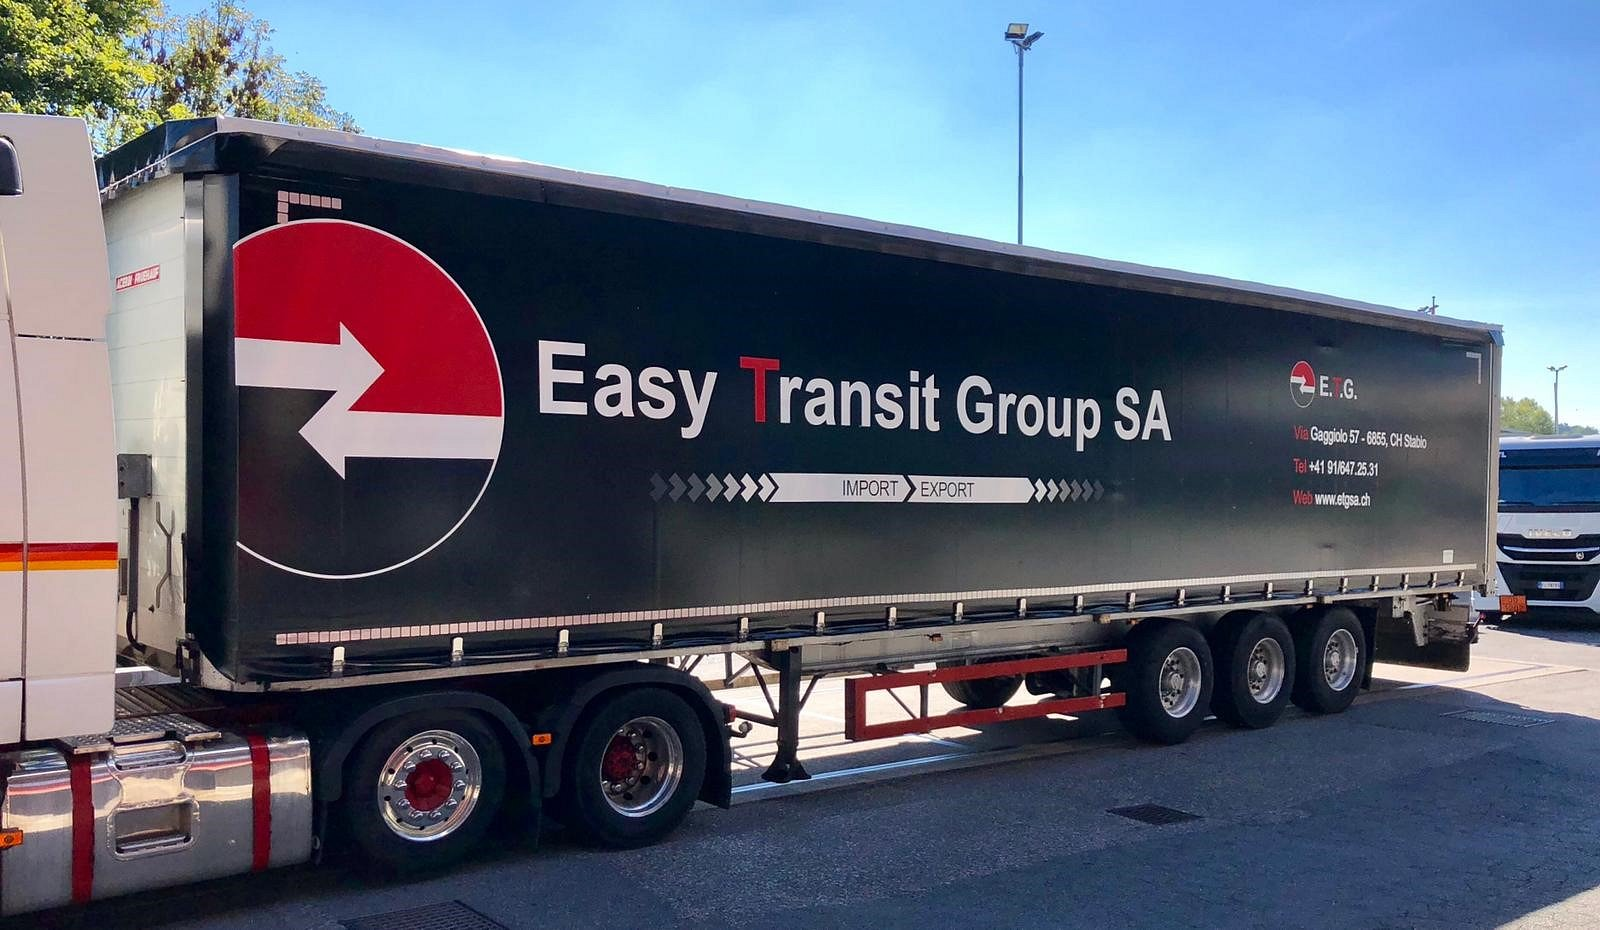 Easy Transit Group SA